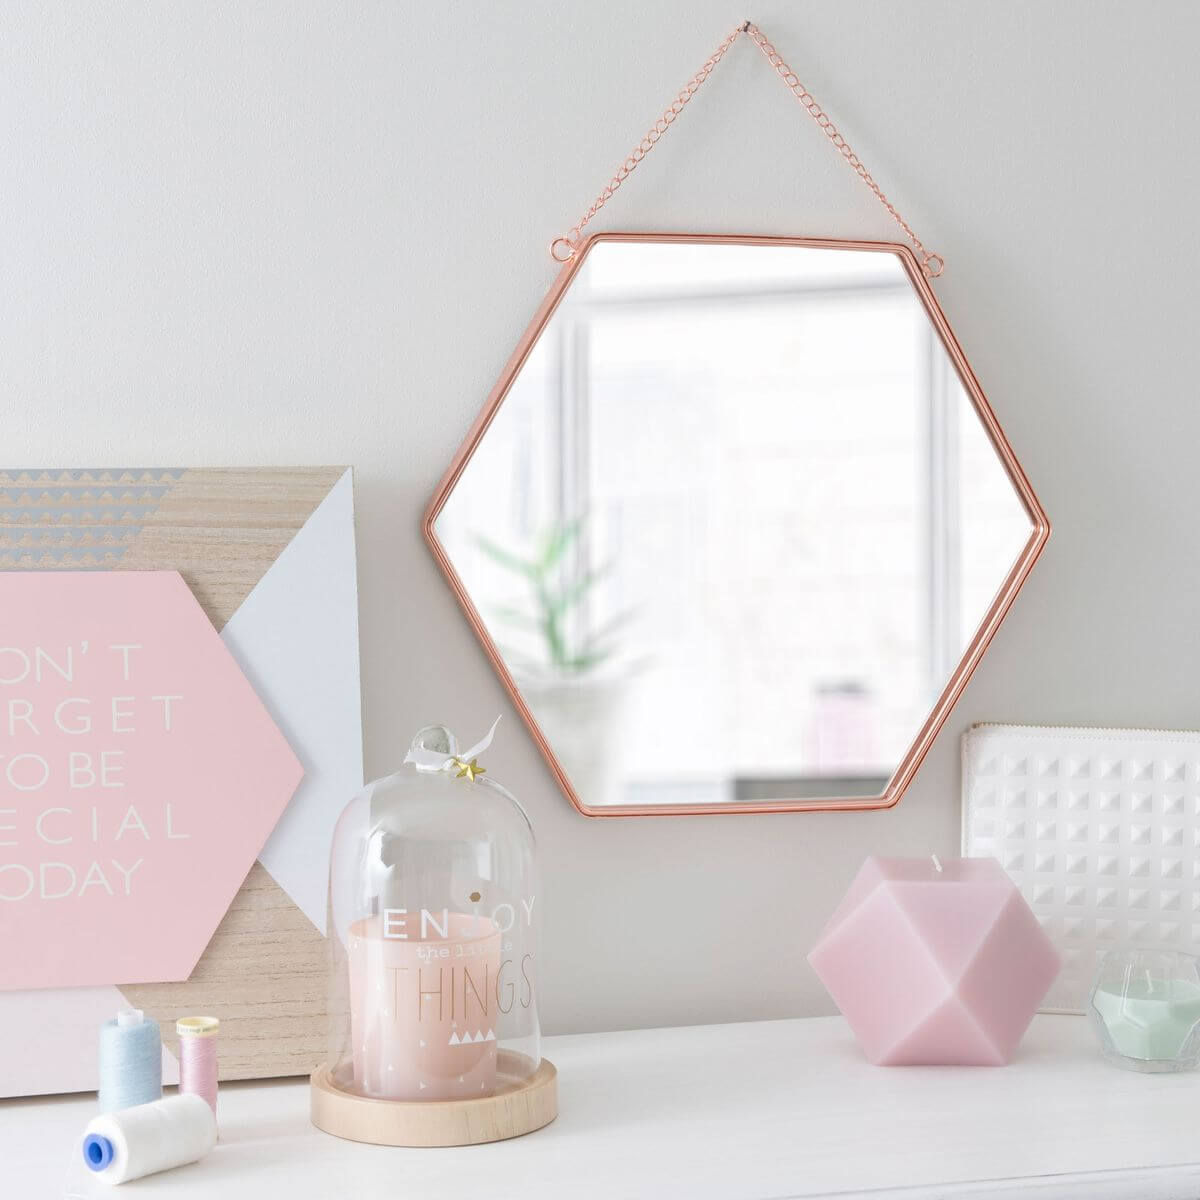 23 Best Copper And Blush Home Decor Ideas And Designs For 2019: 23 Best Copper And Blush Home Decor Ideas And Designs For 2019